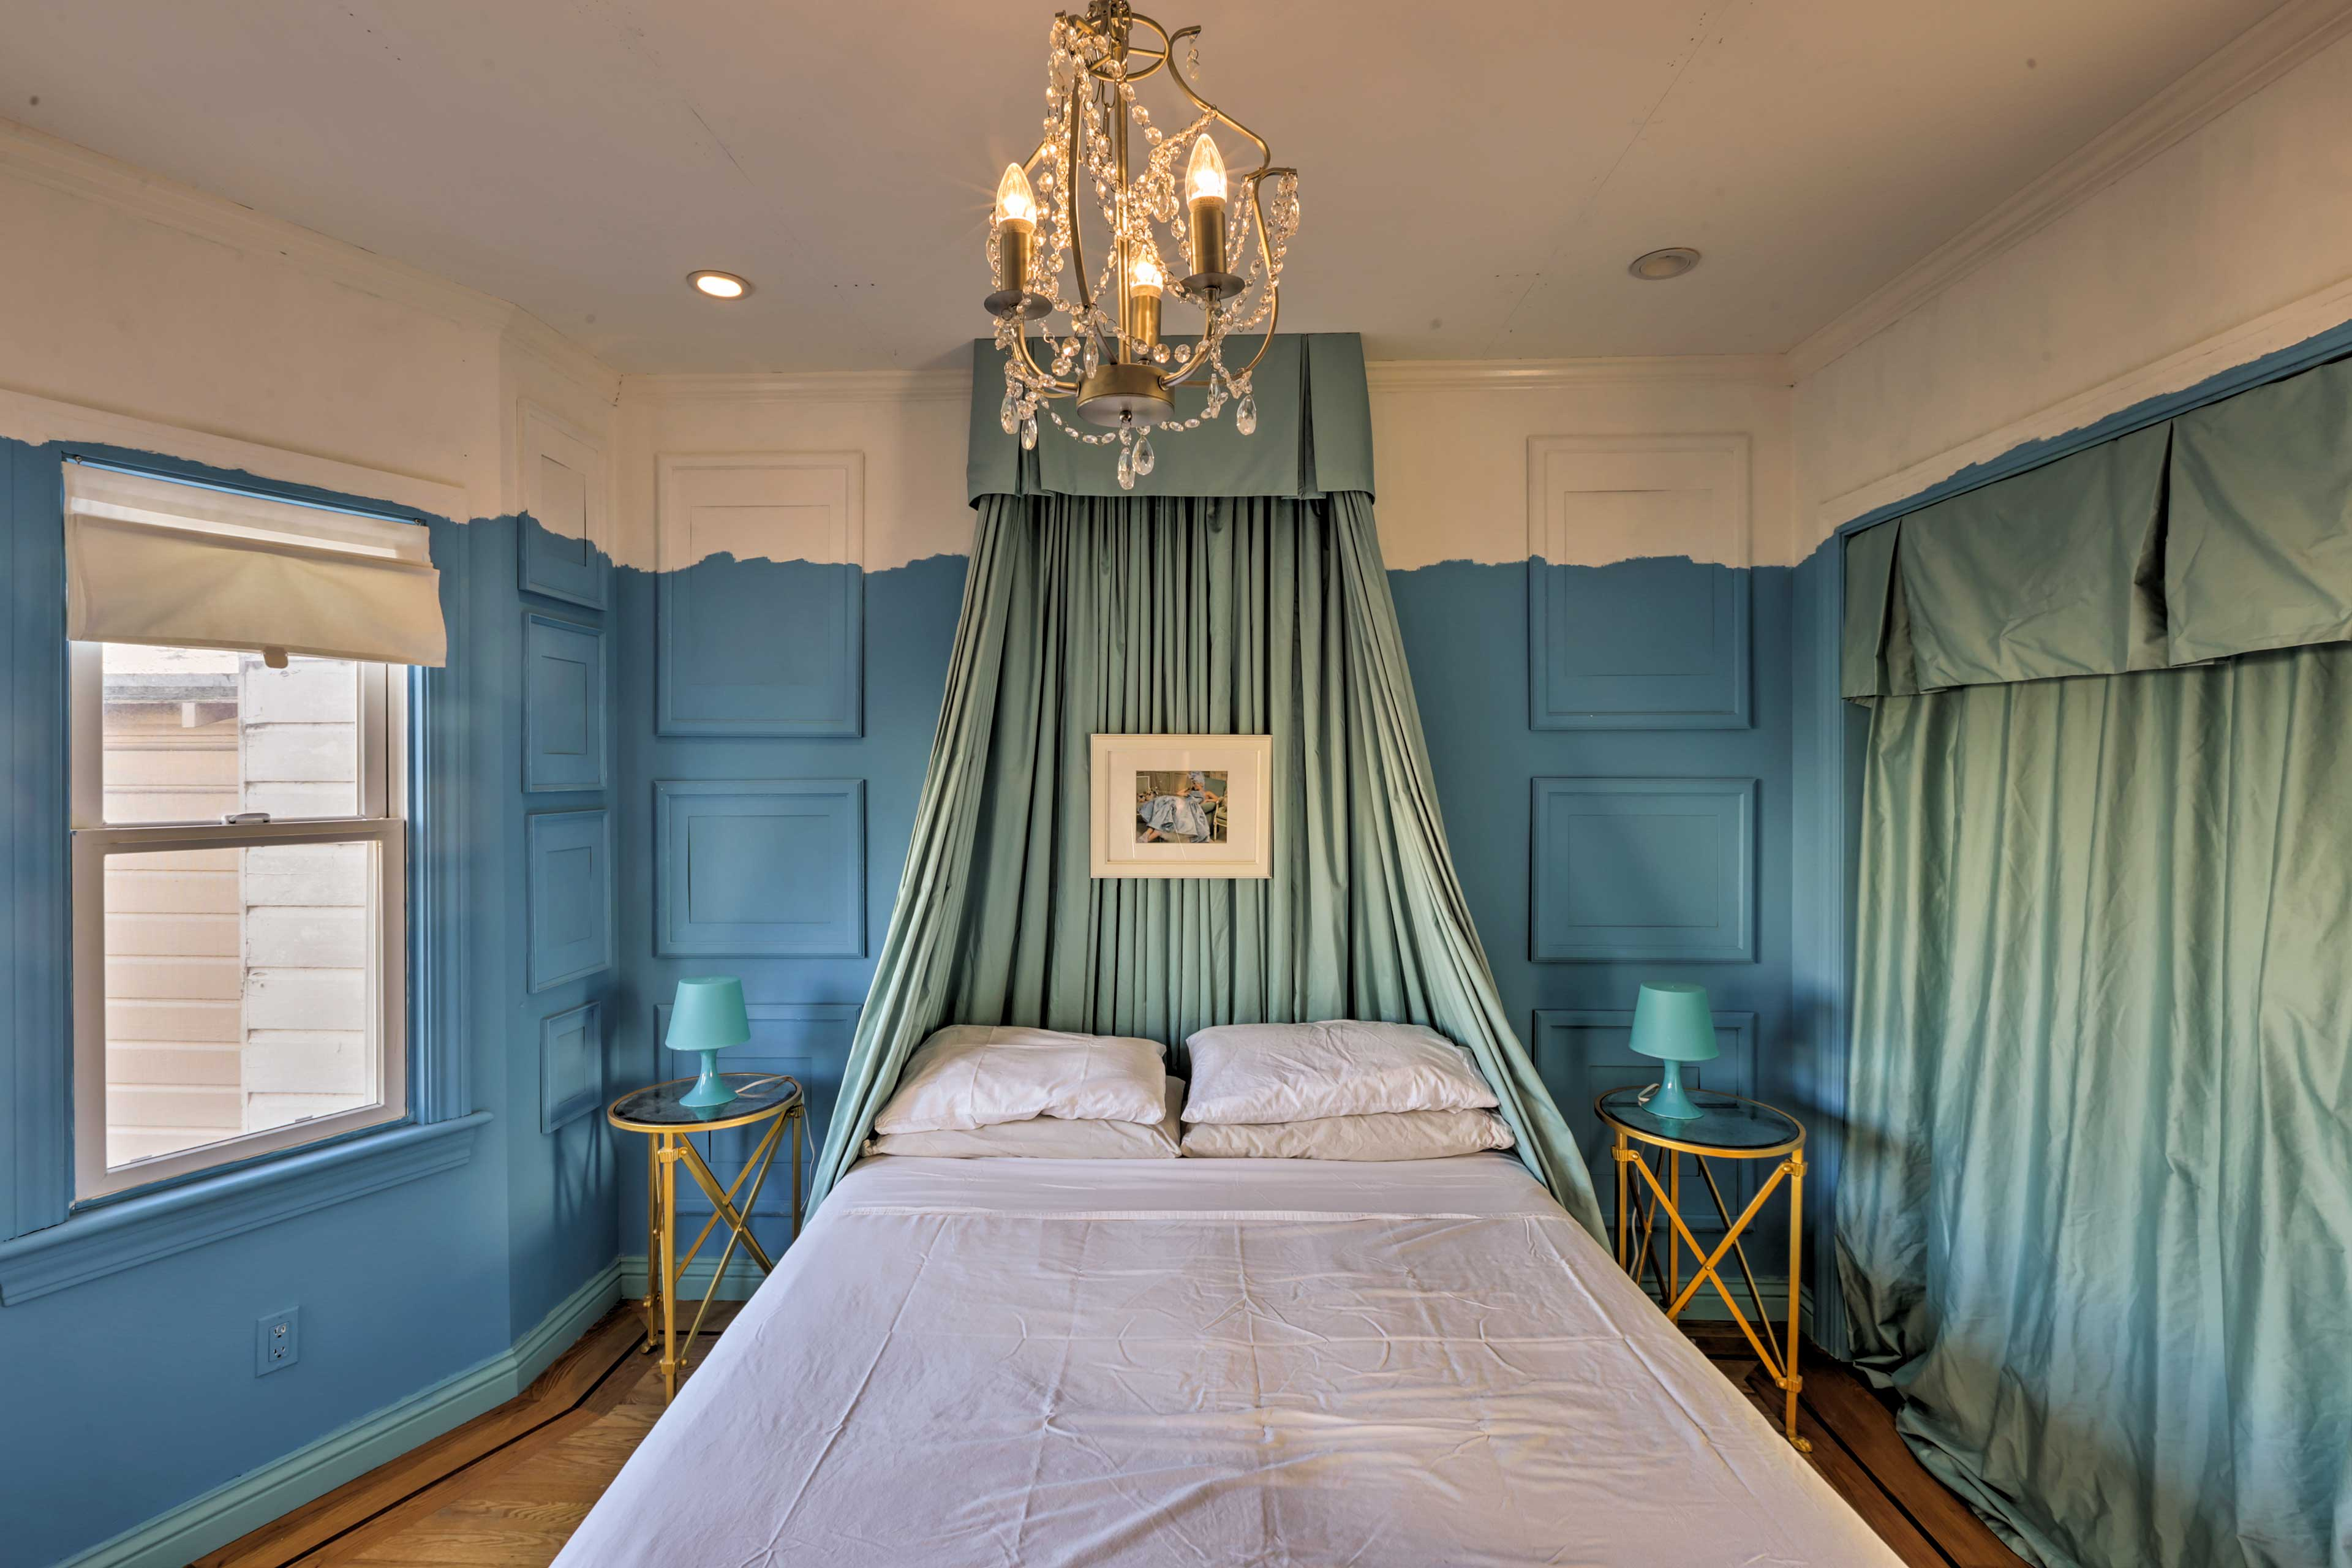 The second bedroom is adorned with blue hues and a curtained headboard.